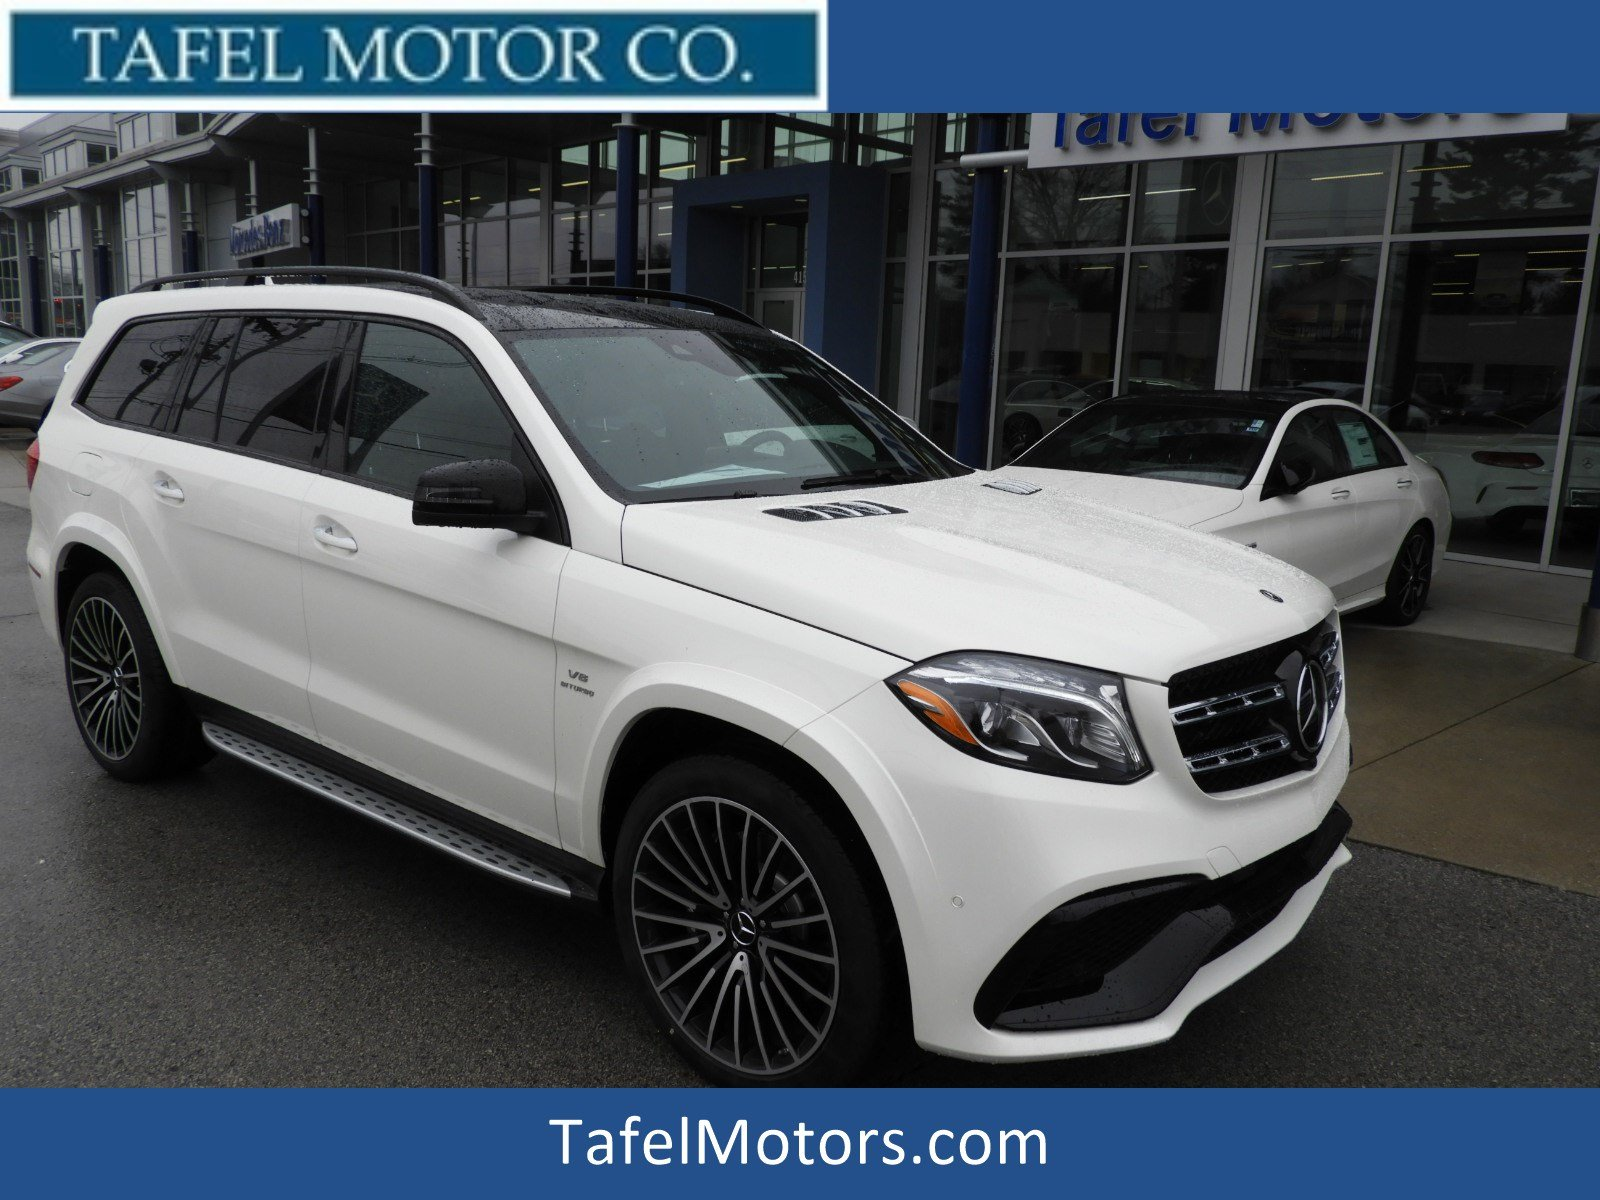 New 2018 mercedes benz gls gls 63 amg 4matic suv sport for Mercedes benz amg suv 2018